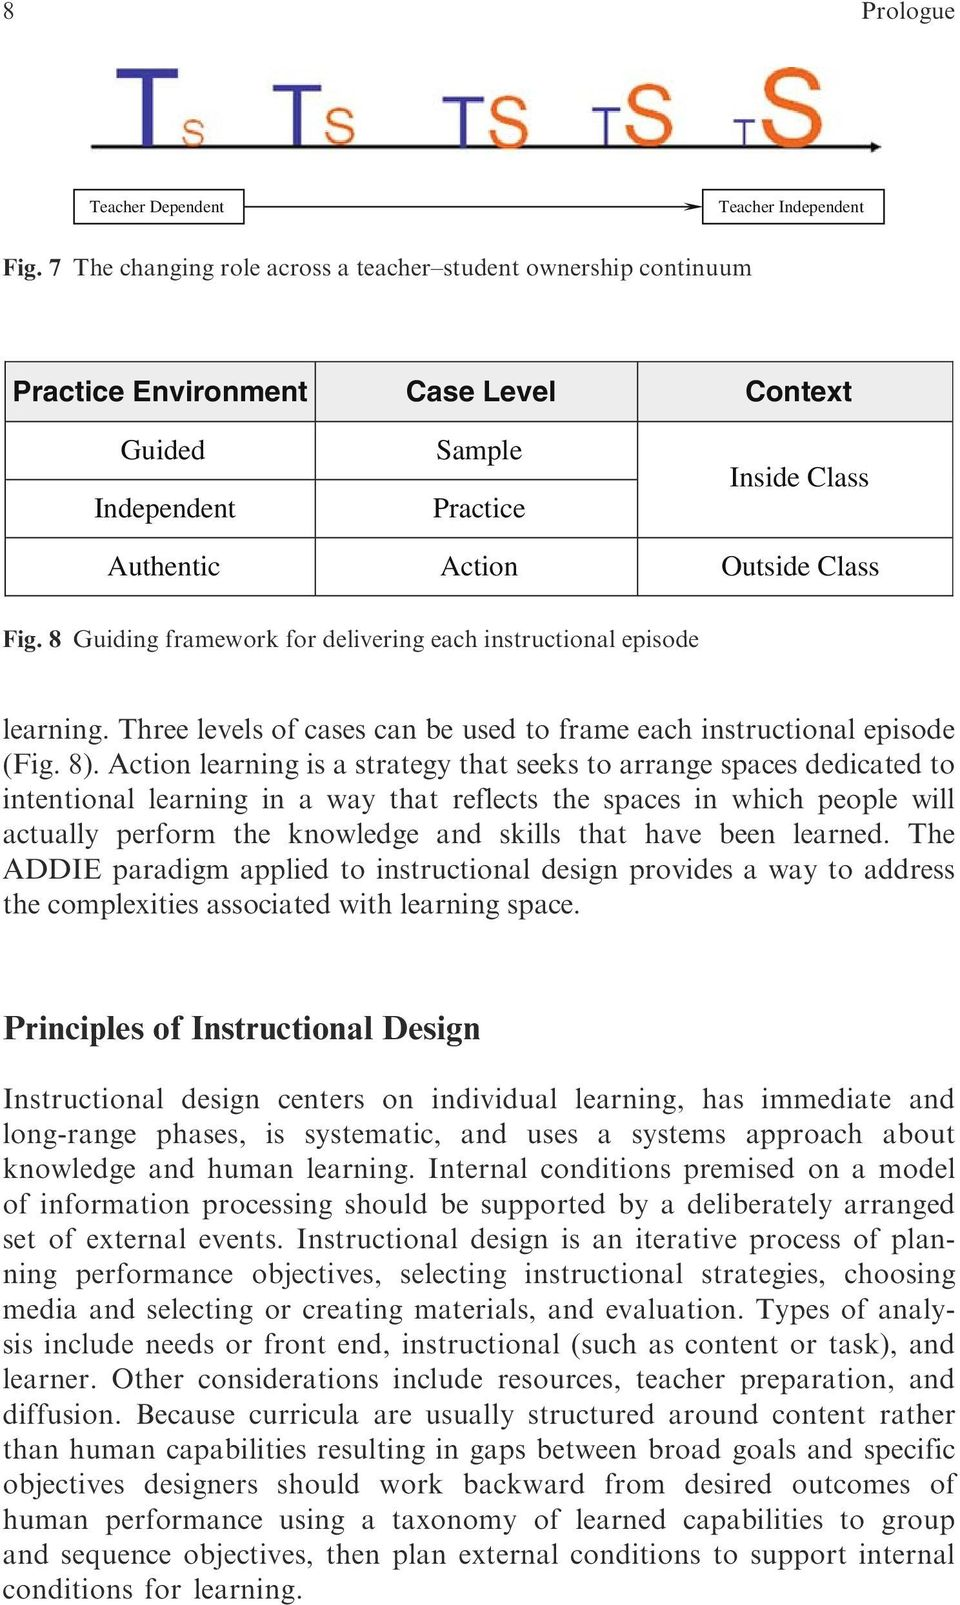 8 Guiding framework for delivering each instructional episode learning. Three levels of cases can be used to frame each instructional episode (Fig. 8).